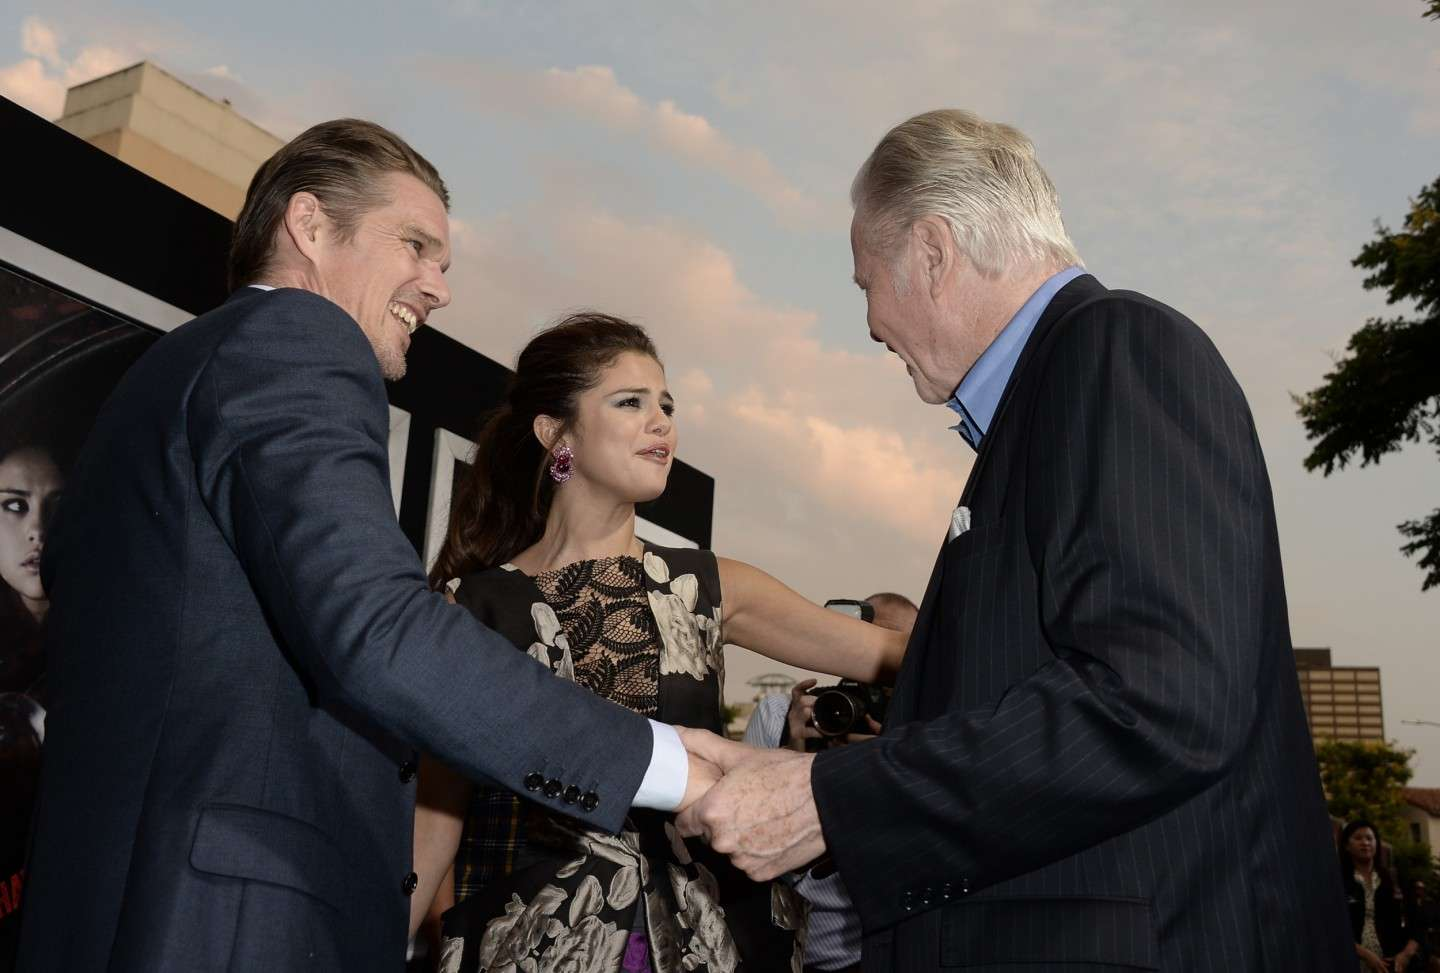 Selena Gomez, Jon Voight, and Ethan Hawke arrive at the premiere of Warner Bros